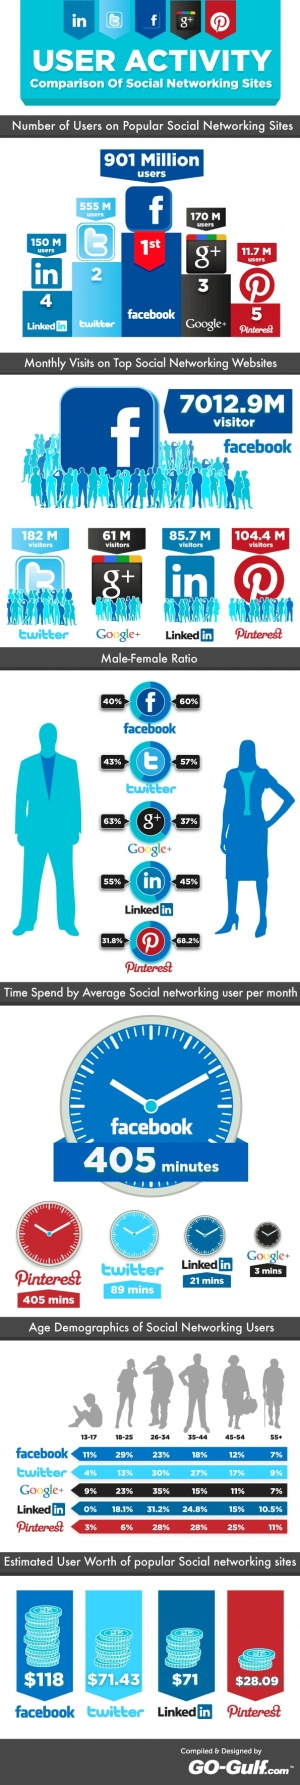 User activity - Comparison of social networking sites